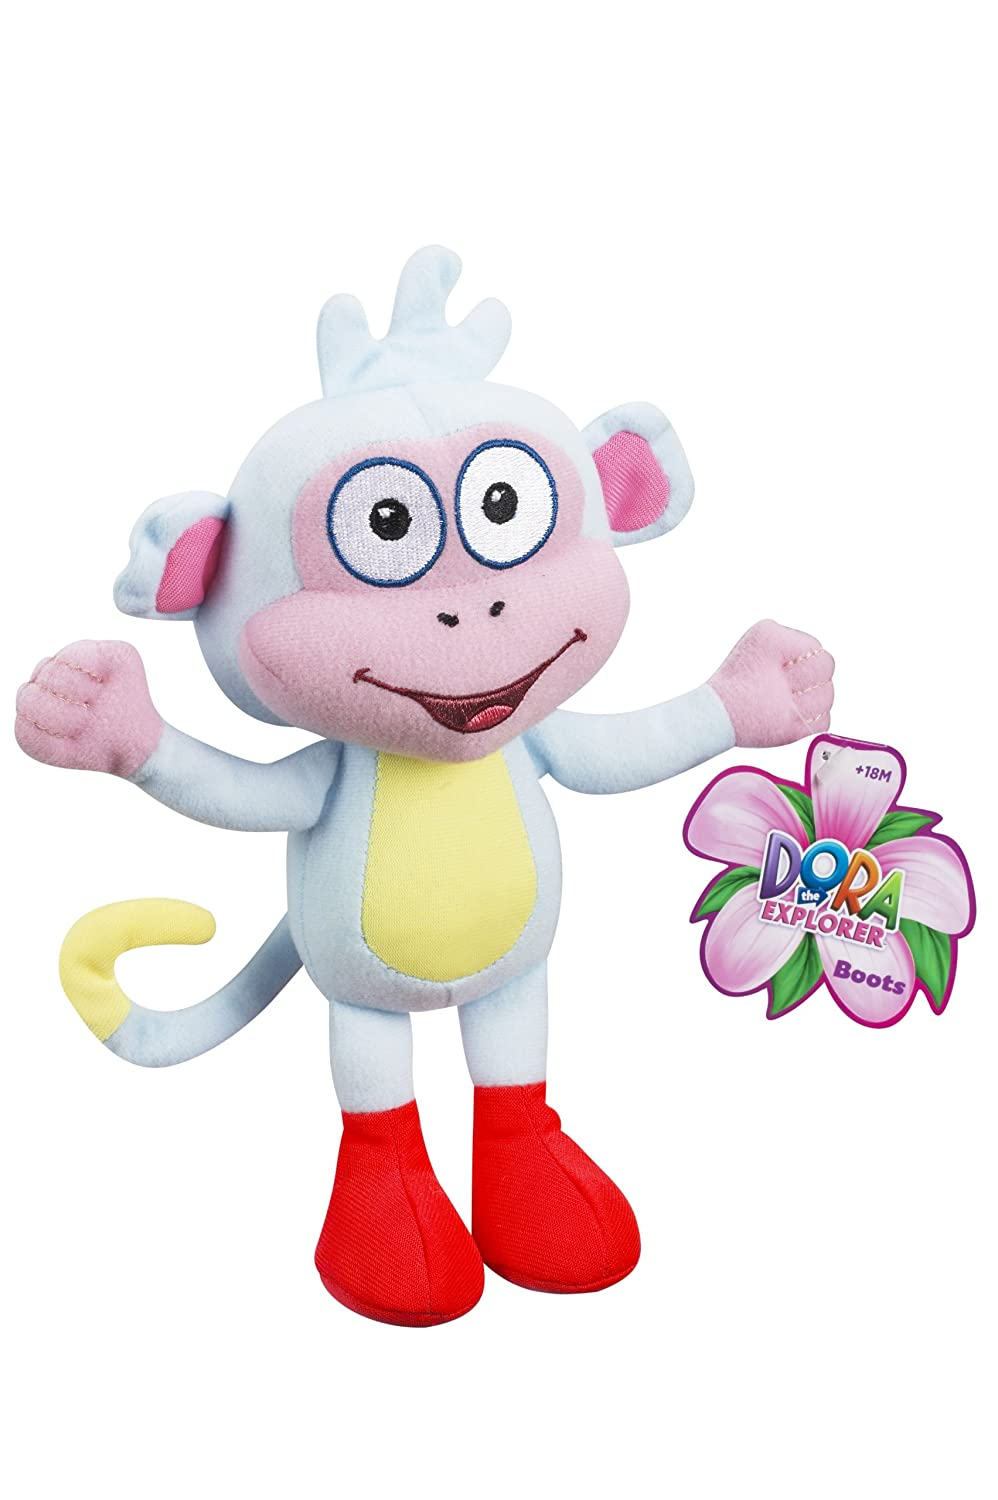 1 plush Babouche the Monkey of Dora The Explorer 20 cm Fischer Price